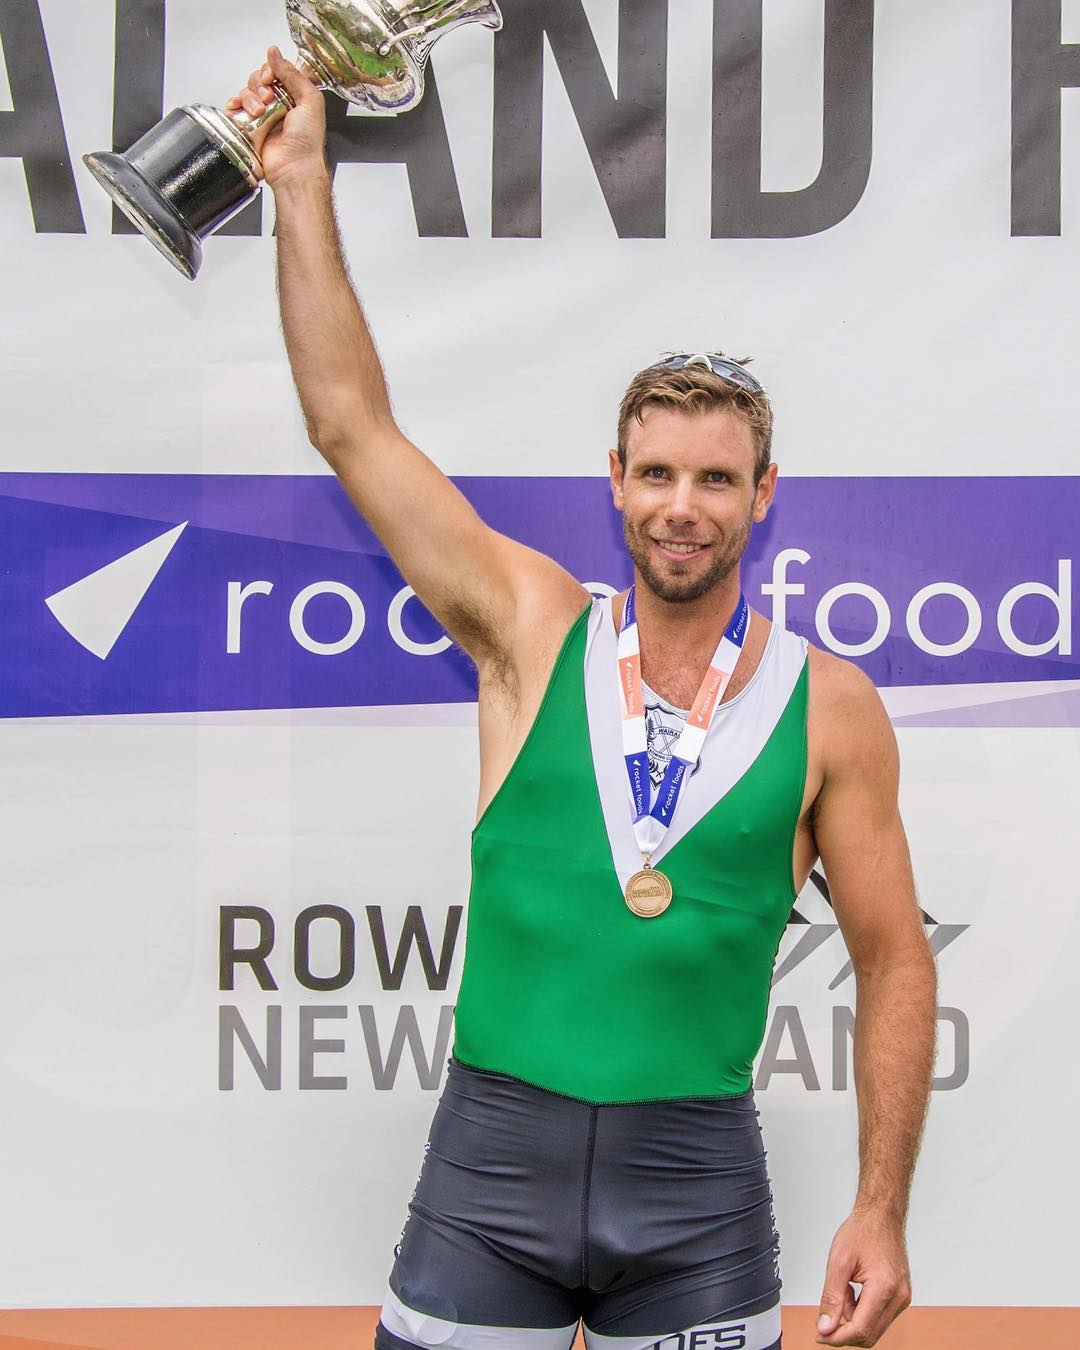 Robbie Manson wins at New Zealand Rowing Championships